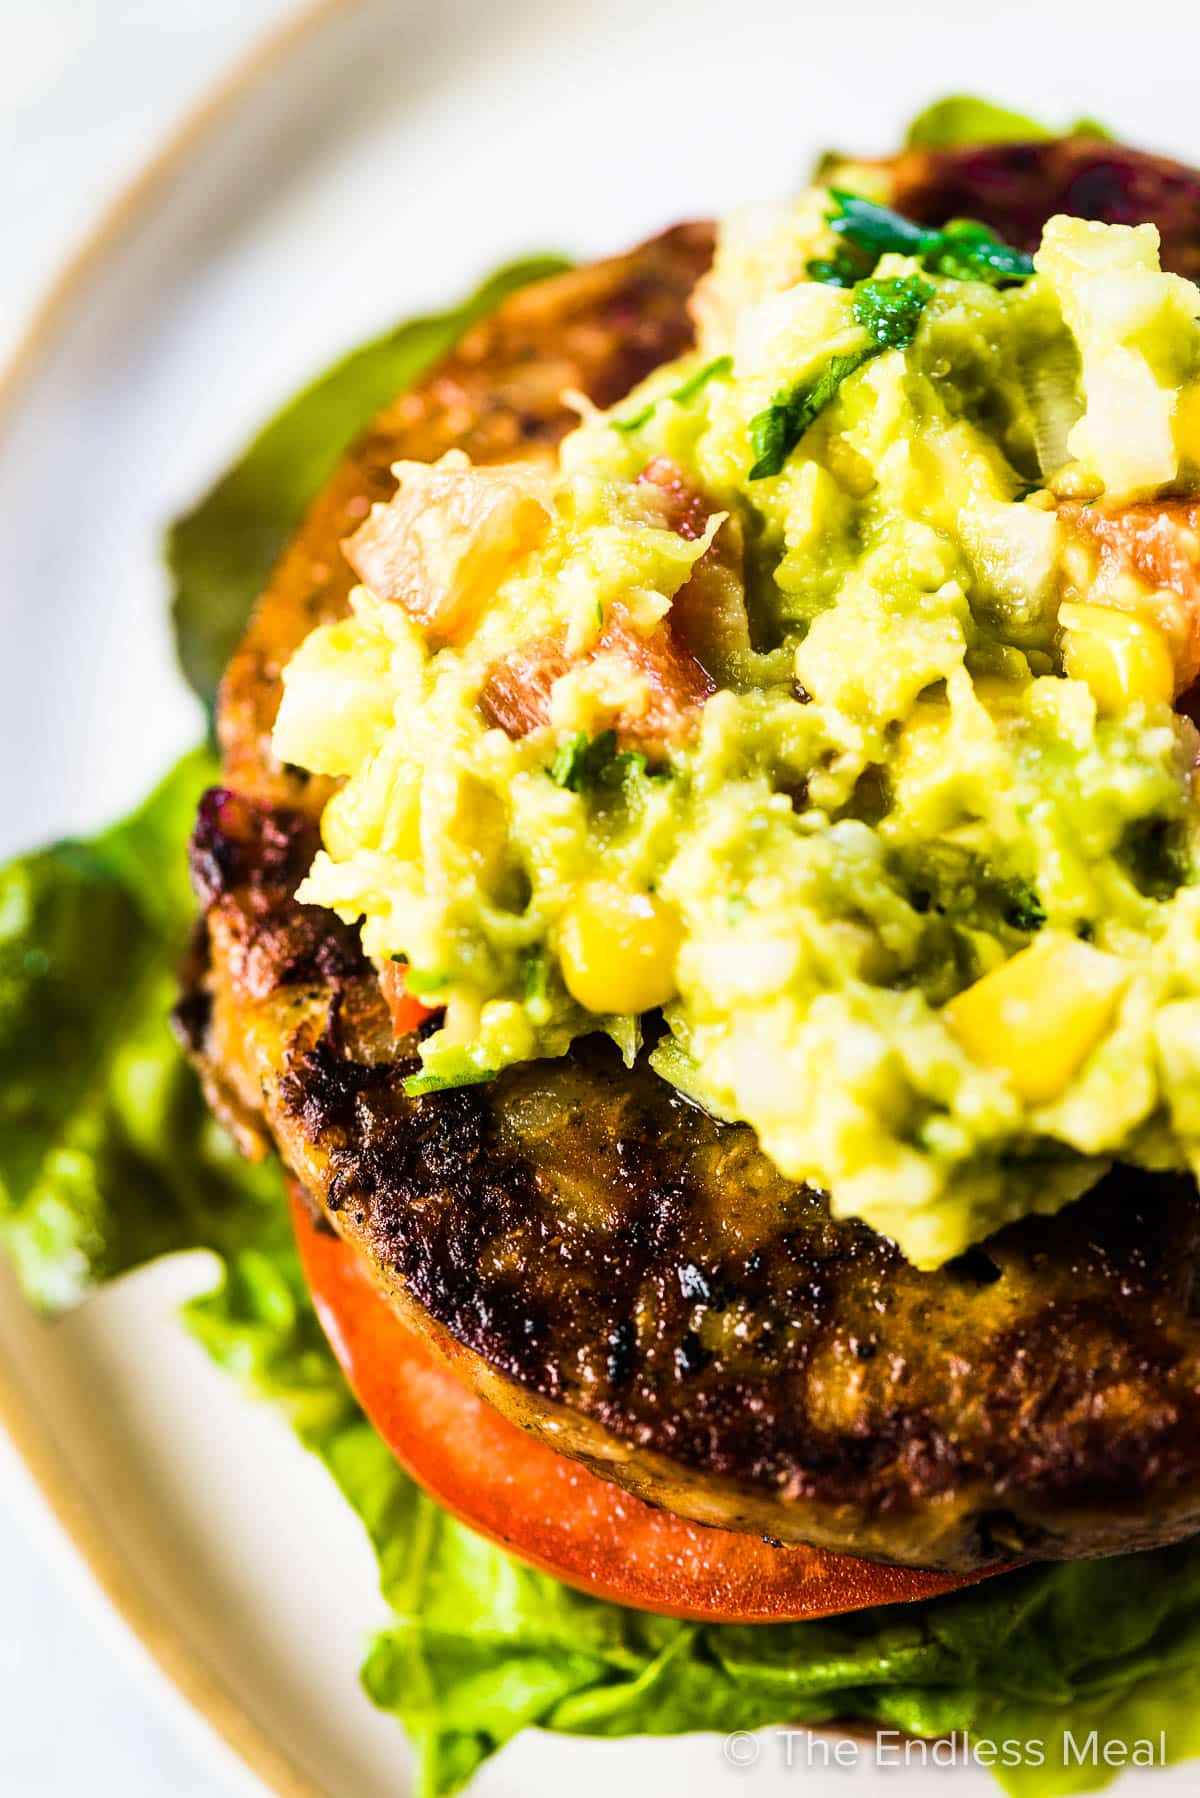 Sol Cuisines's Portobello Mushroom & Quinoa Burger on a bun topped with guacamole.